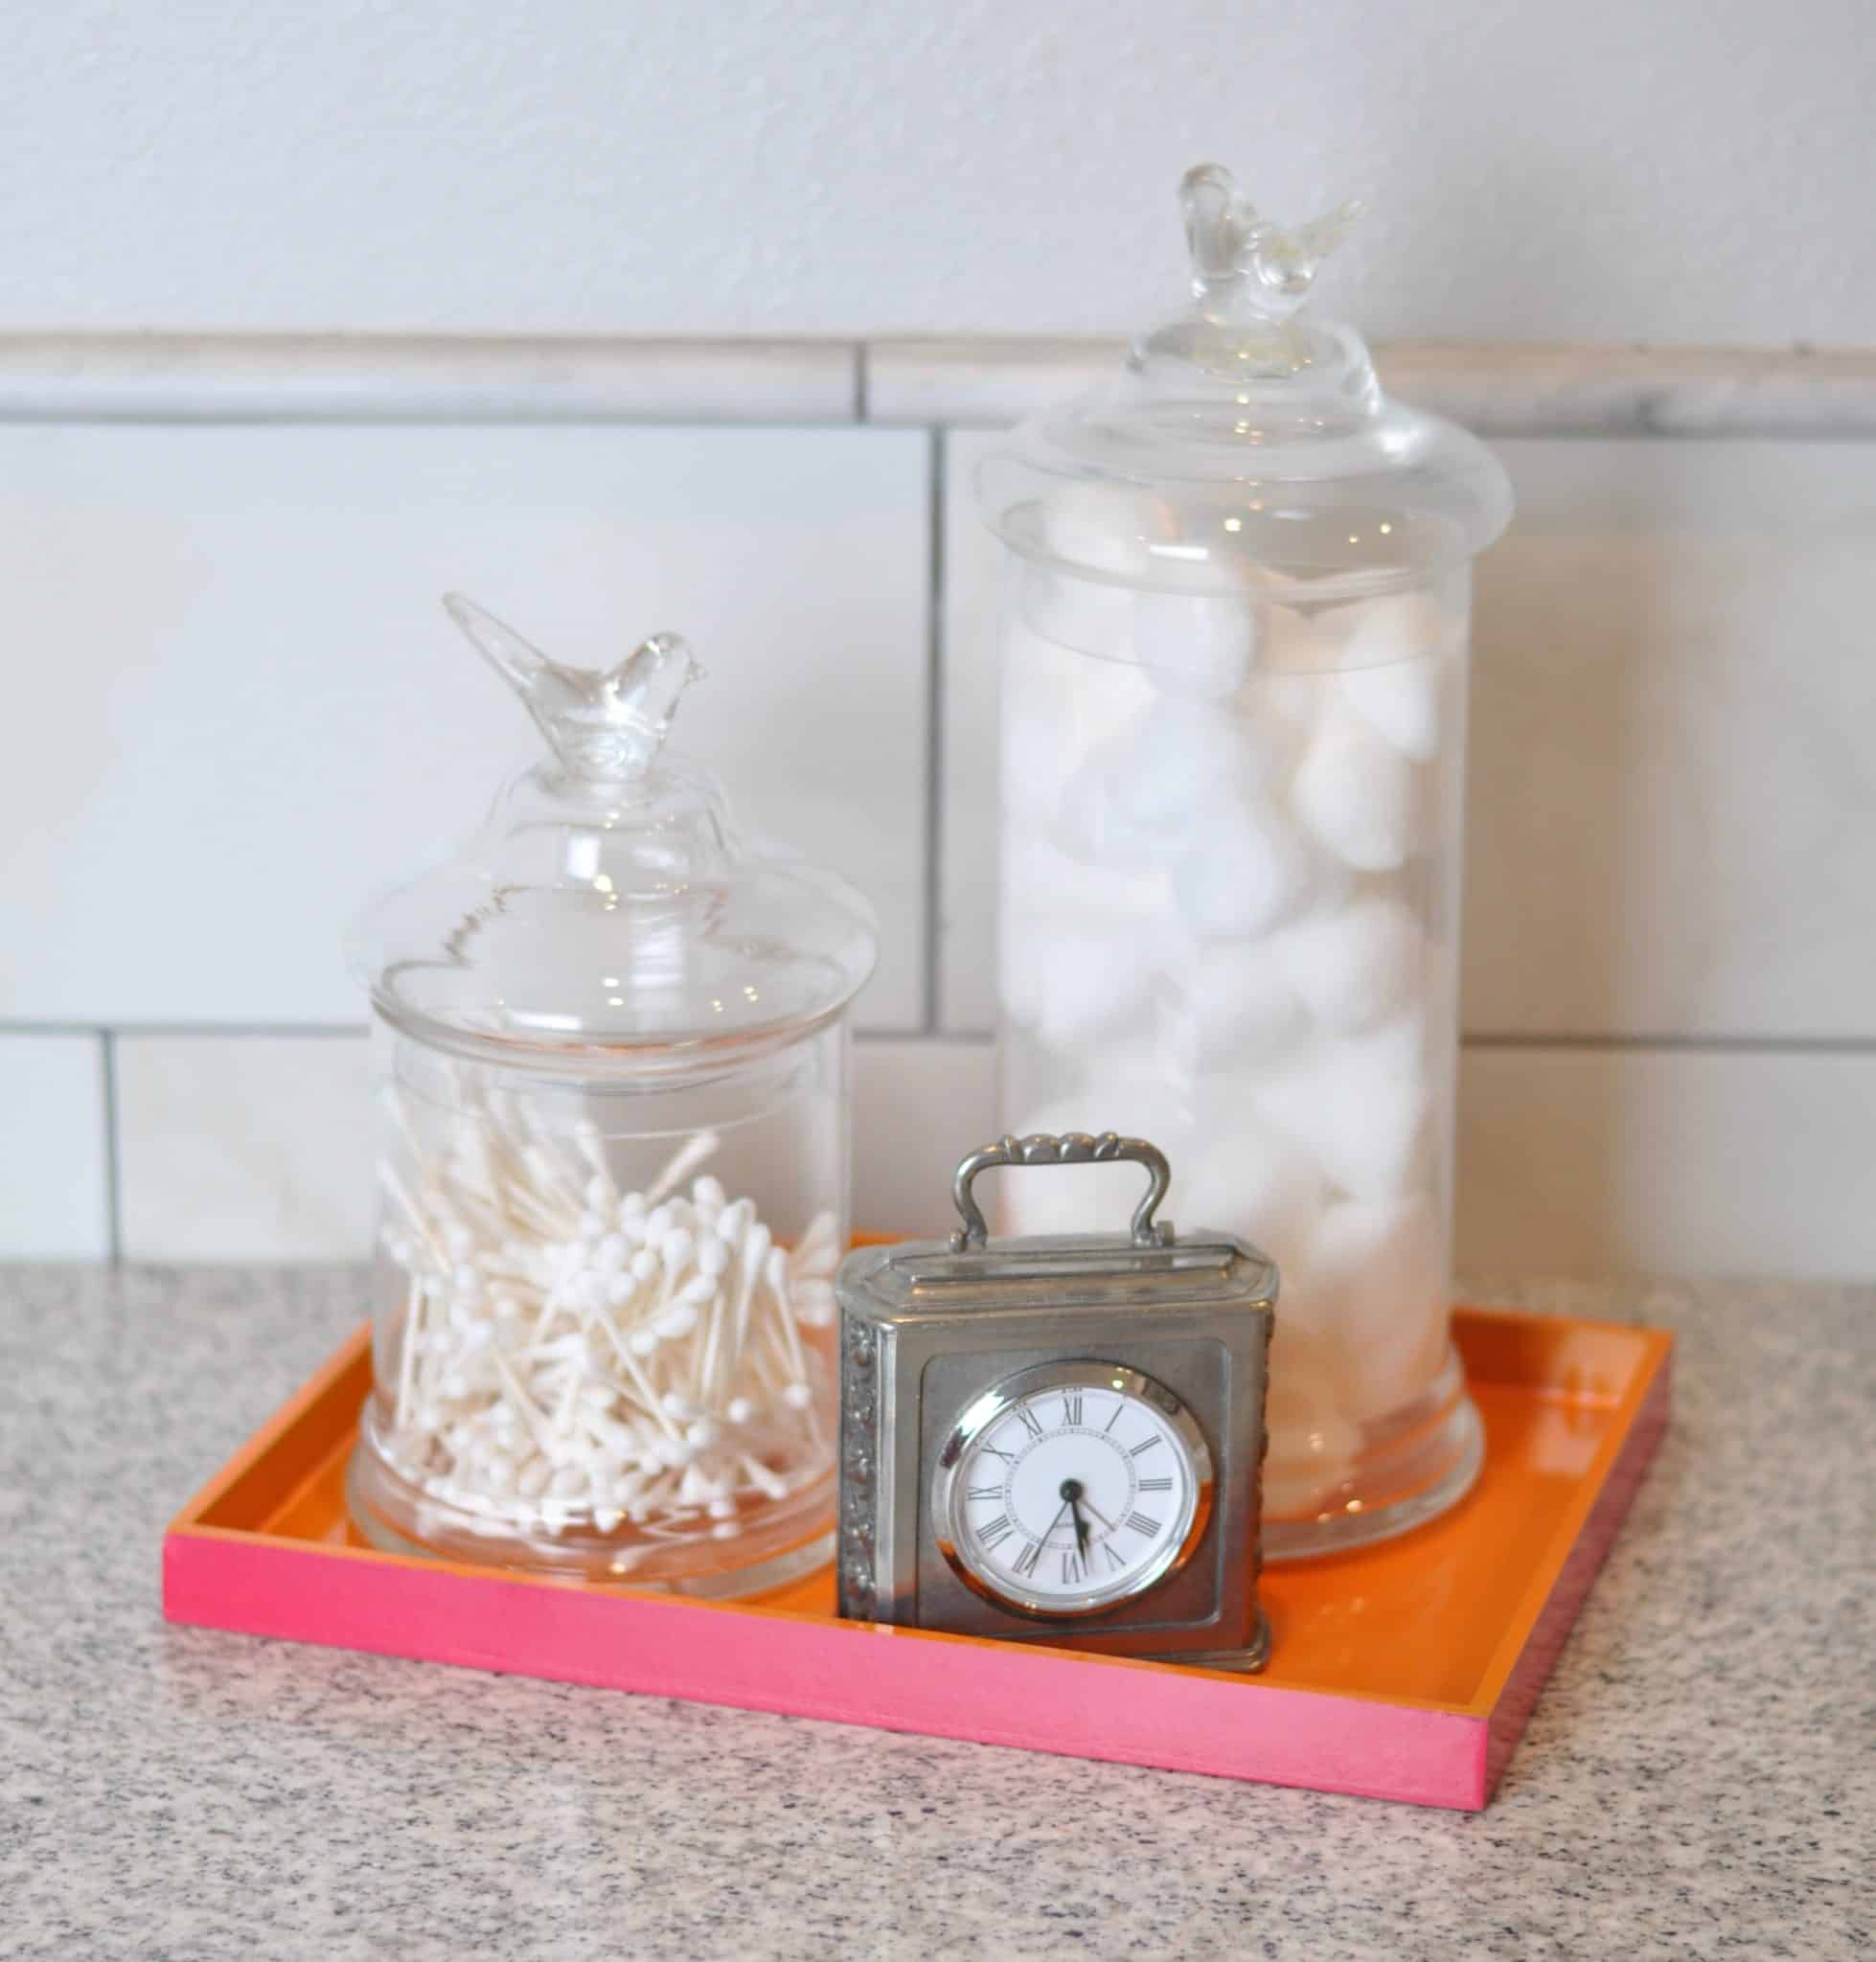 bathroom tray with storage jars, practical storage and organization